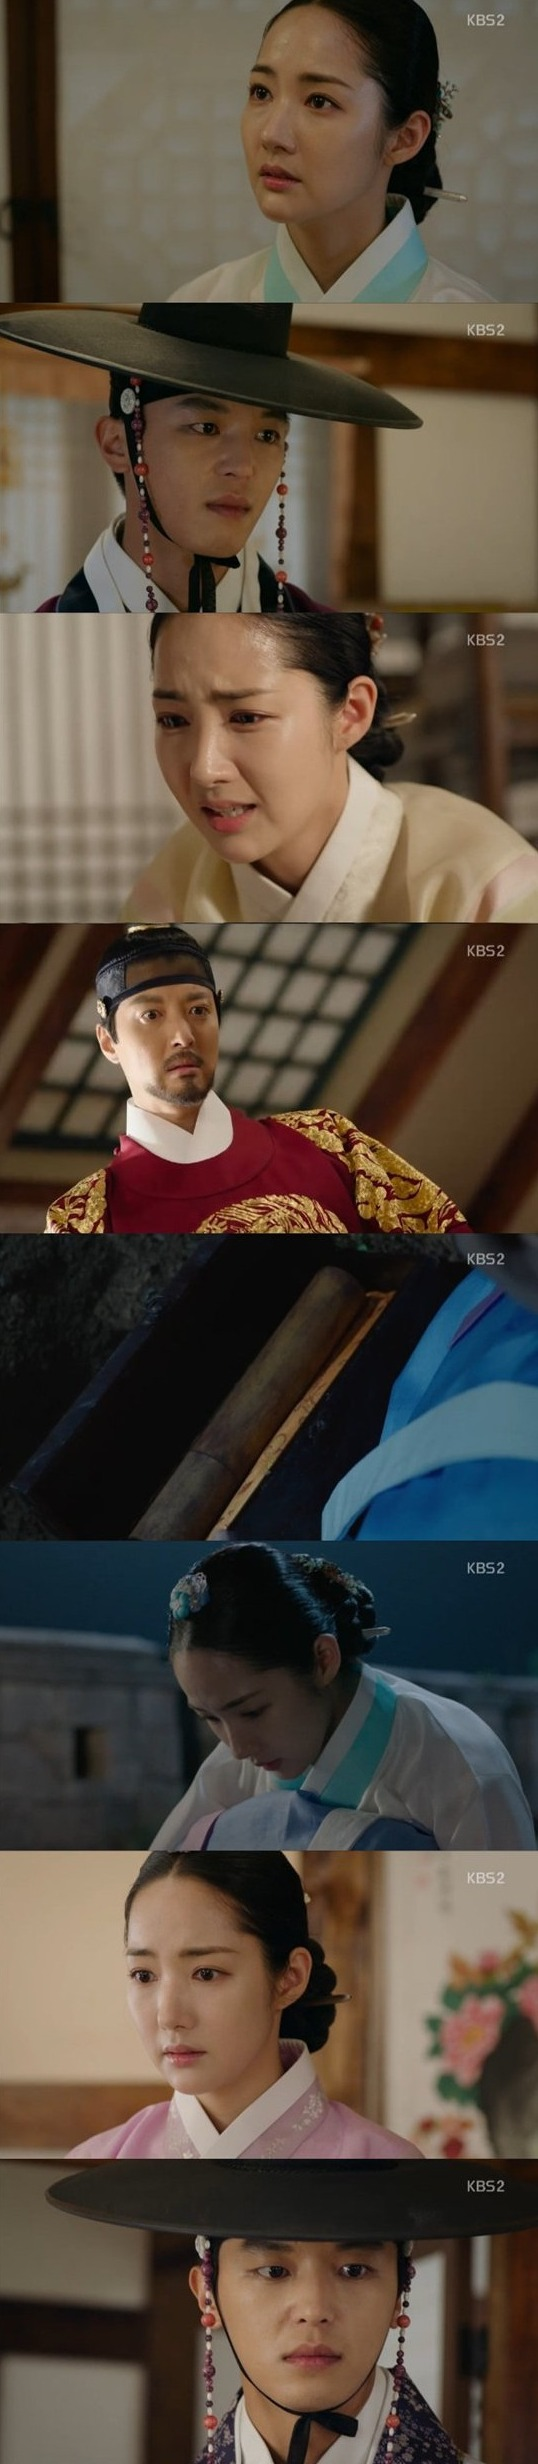 [Spoiler] Added episode 13 captures for the Korean drama 'Queen for 7 Days'